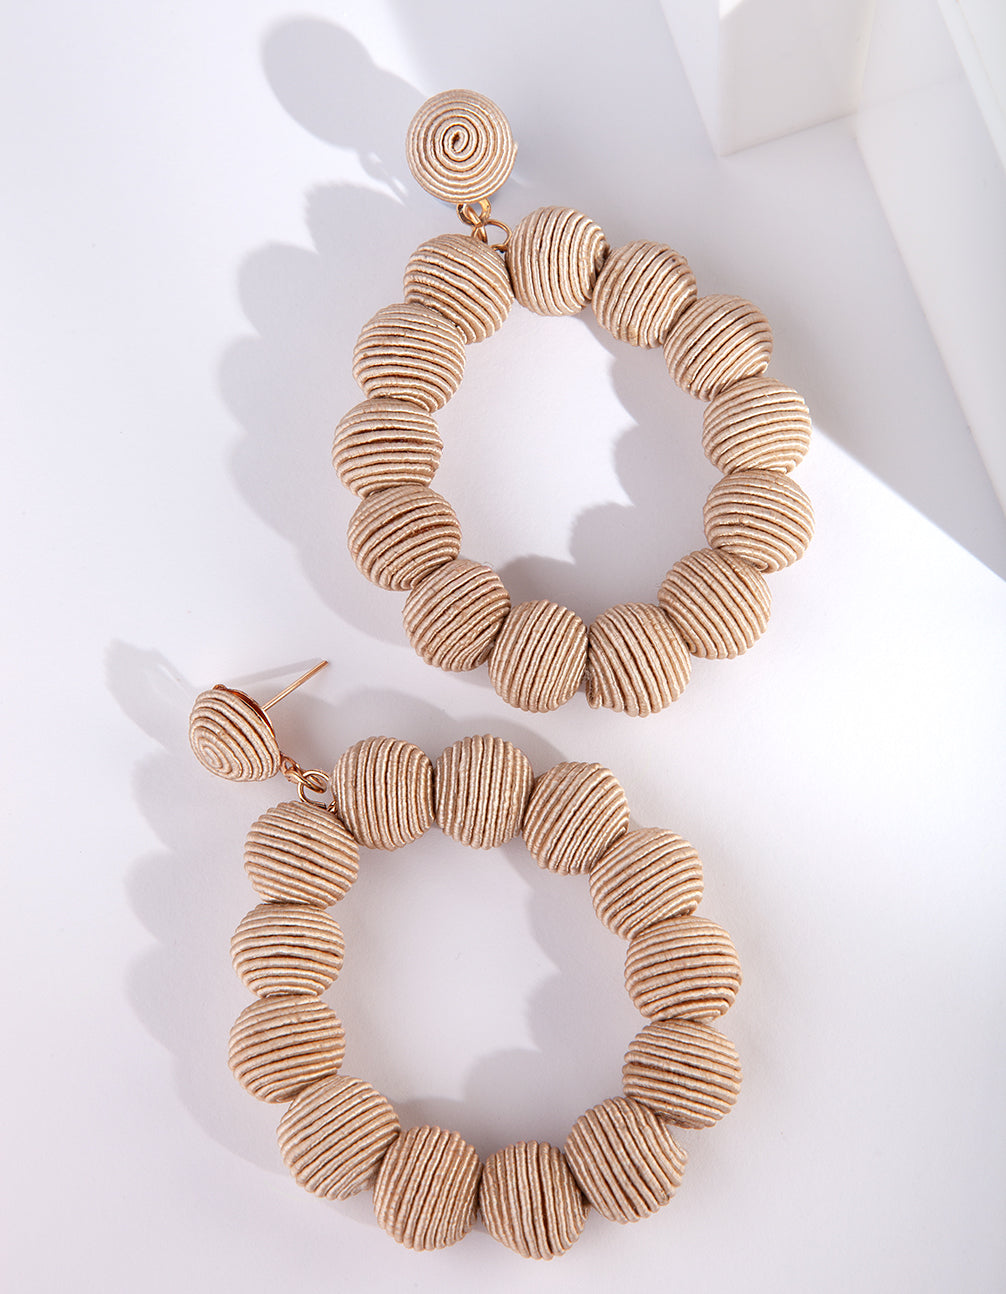 Beige Cord Wrap Ball Earrings